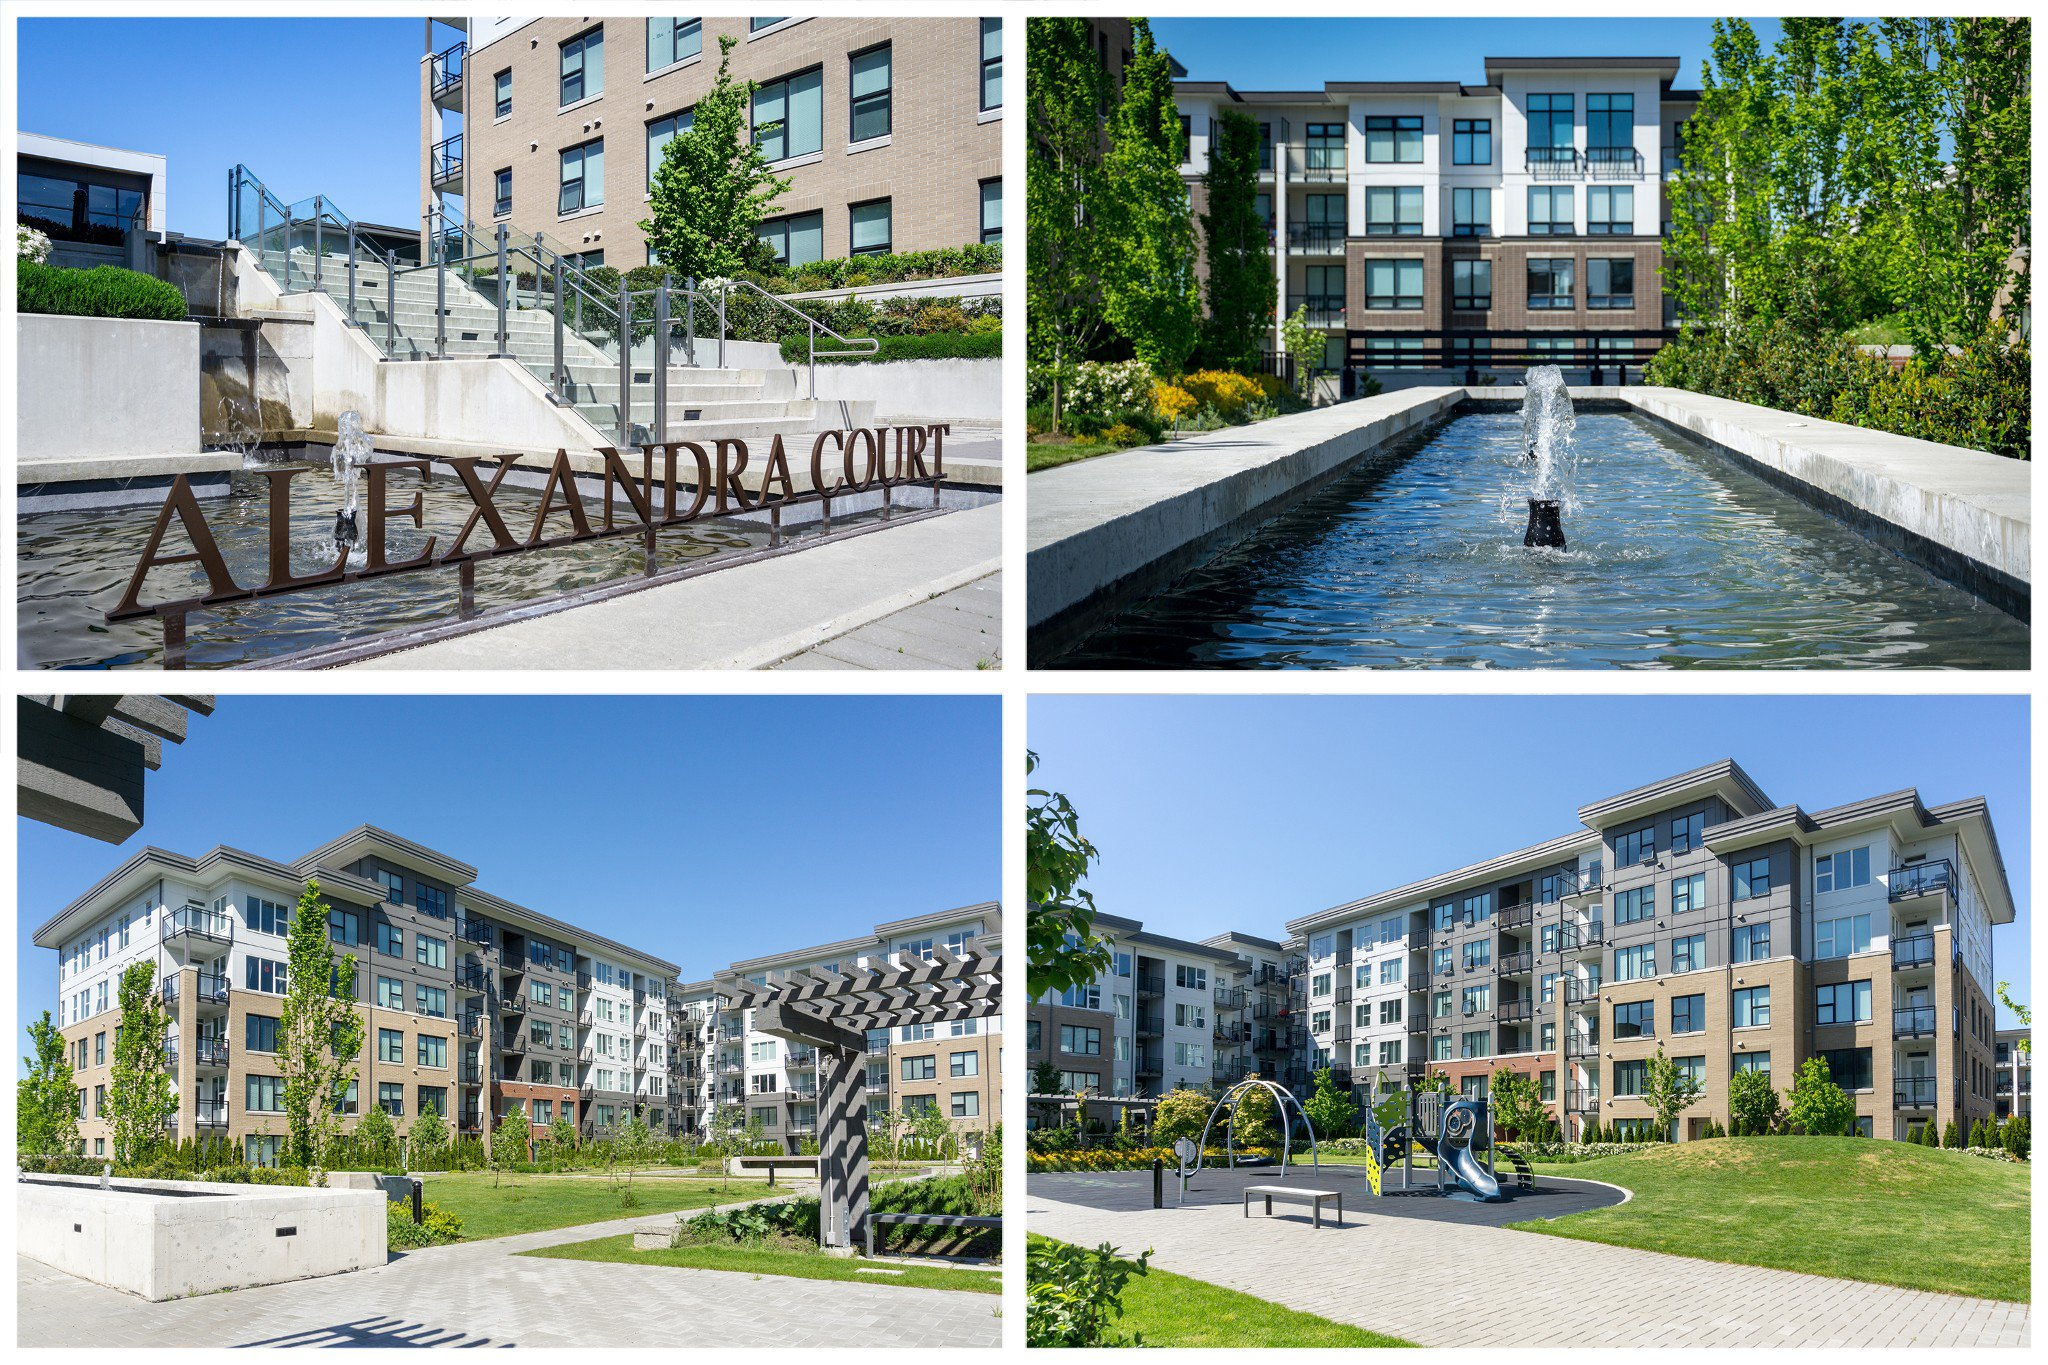 """Photo 34: Photos: 402 9311 ALEXANDRA Road in Richmond: West Cambie Condo for sale in """"ALEXANDRA COURT"""" : MLS®# R2266613"""